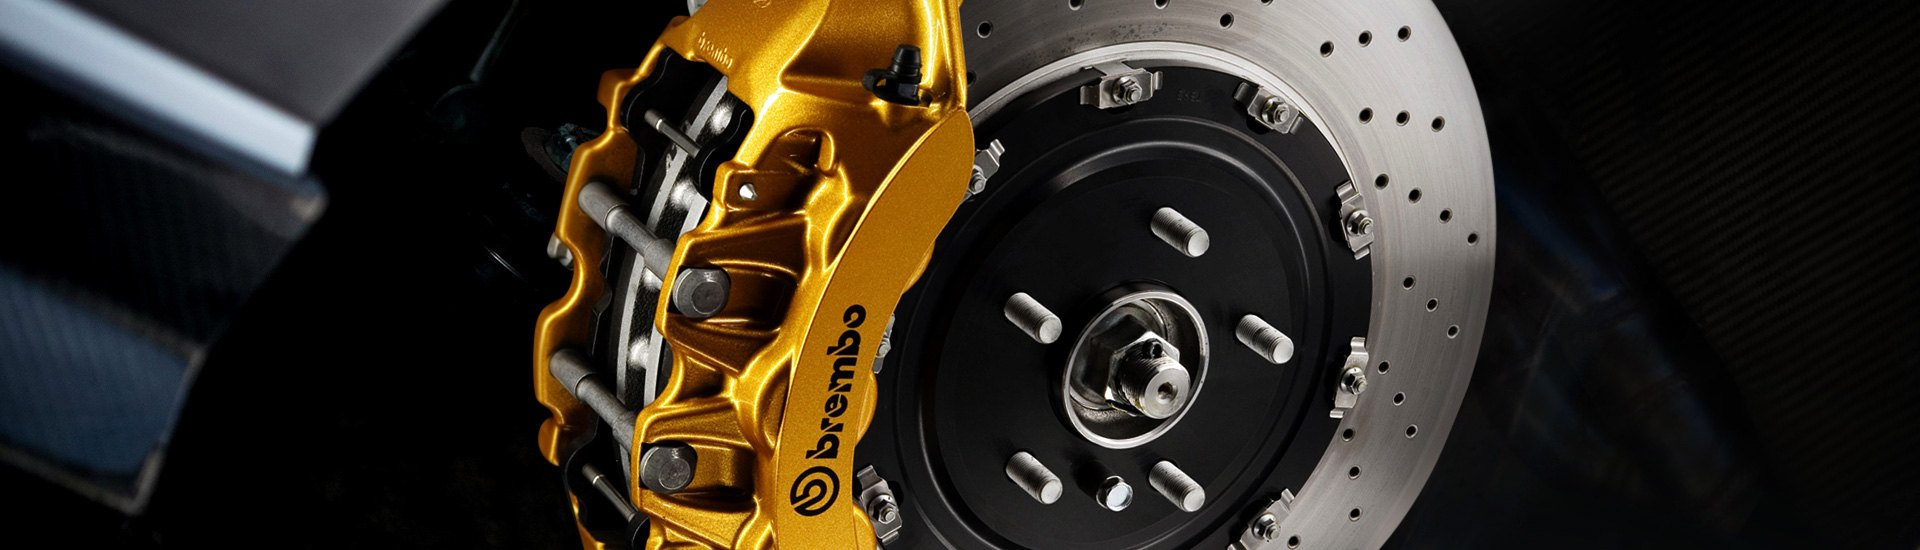 Repair vs Performance Parts | Brake Calipers & Hoses